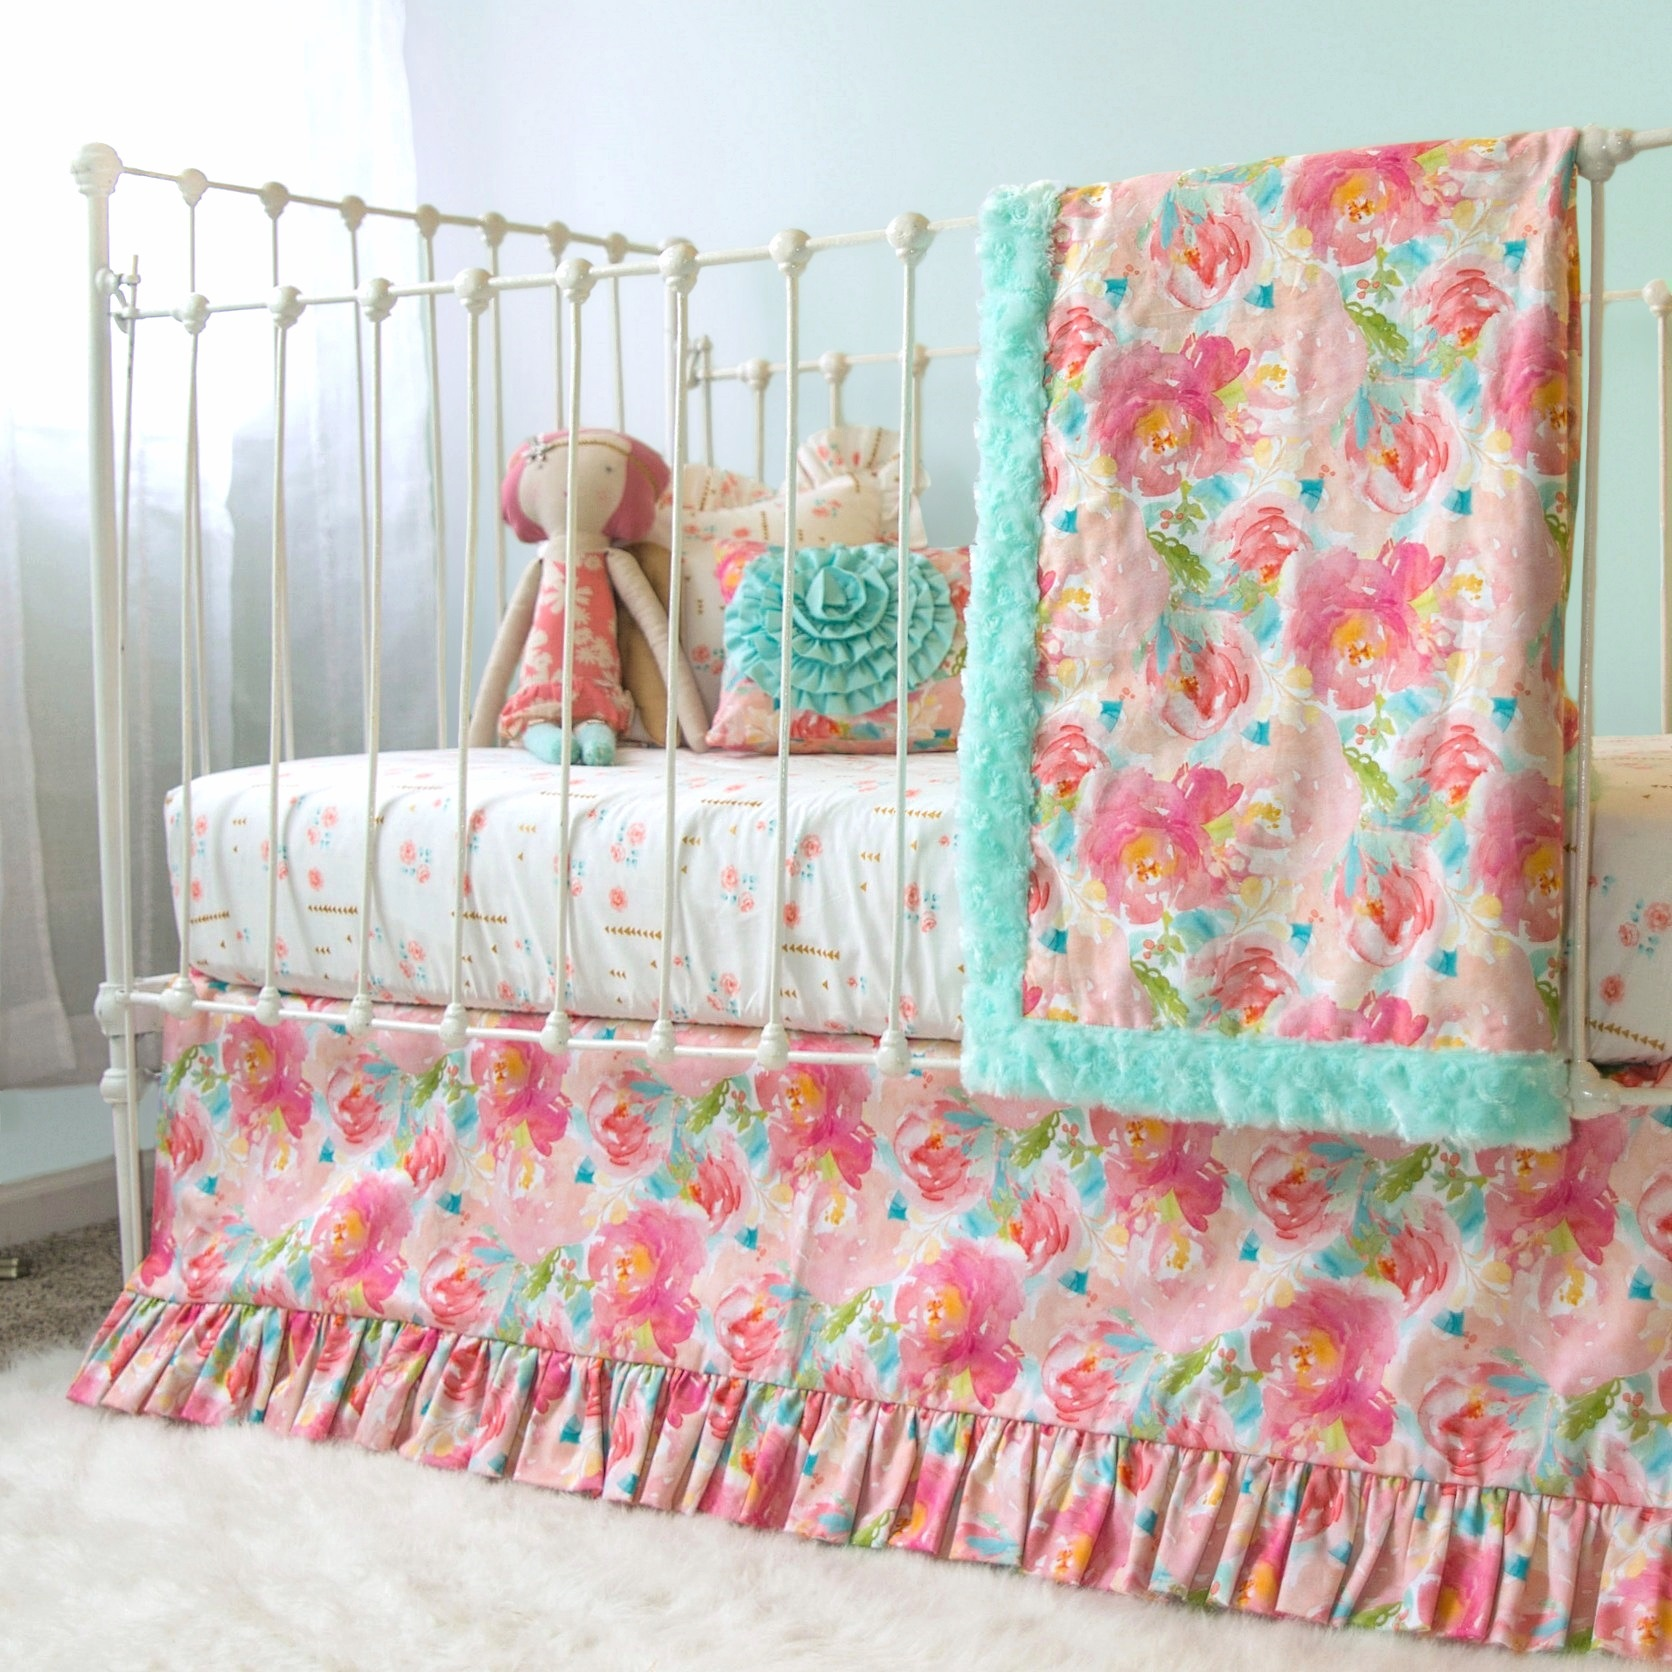 Pastel Nursery Bedding Sets: Pastel Peonies Floral Bumperless Crib Bedding